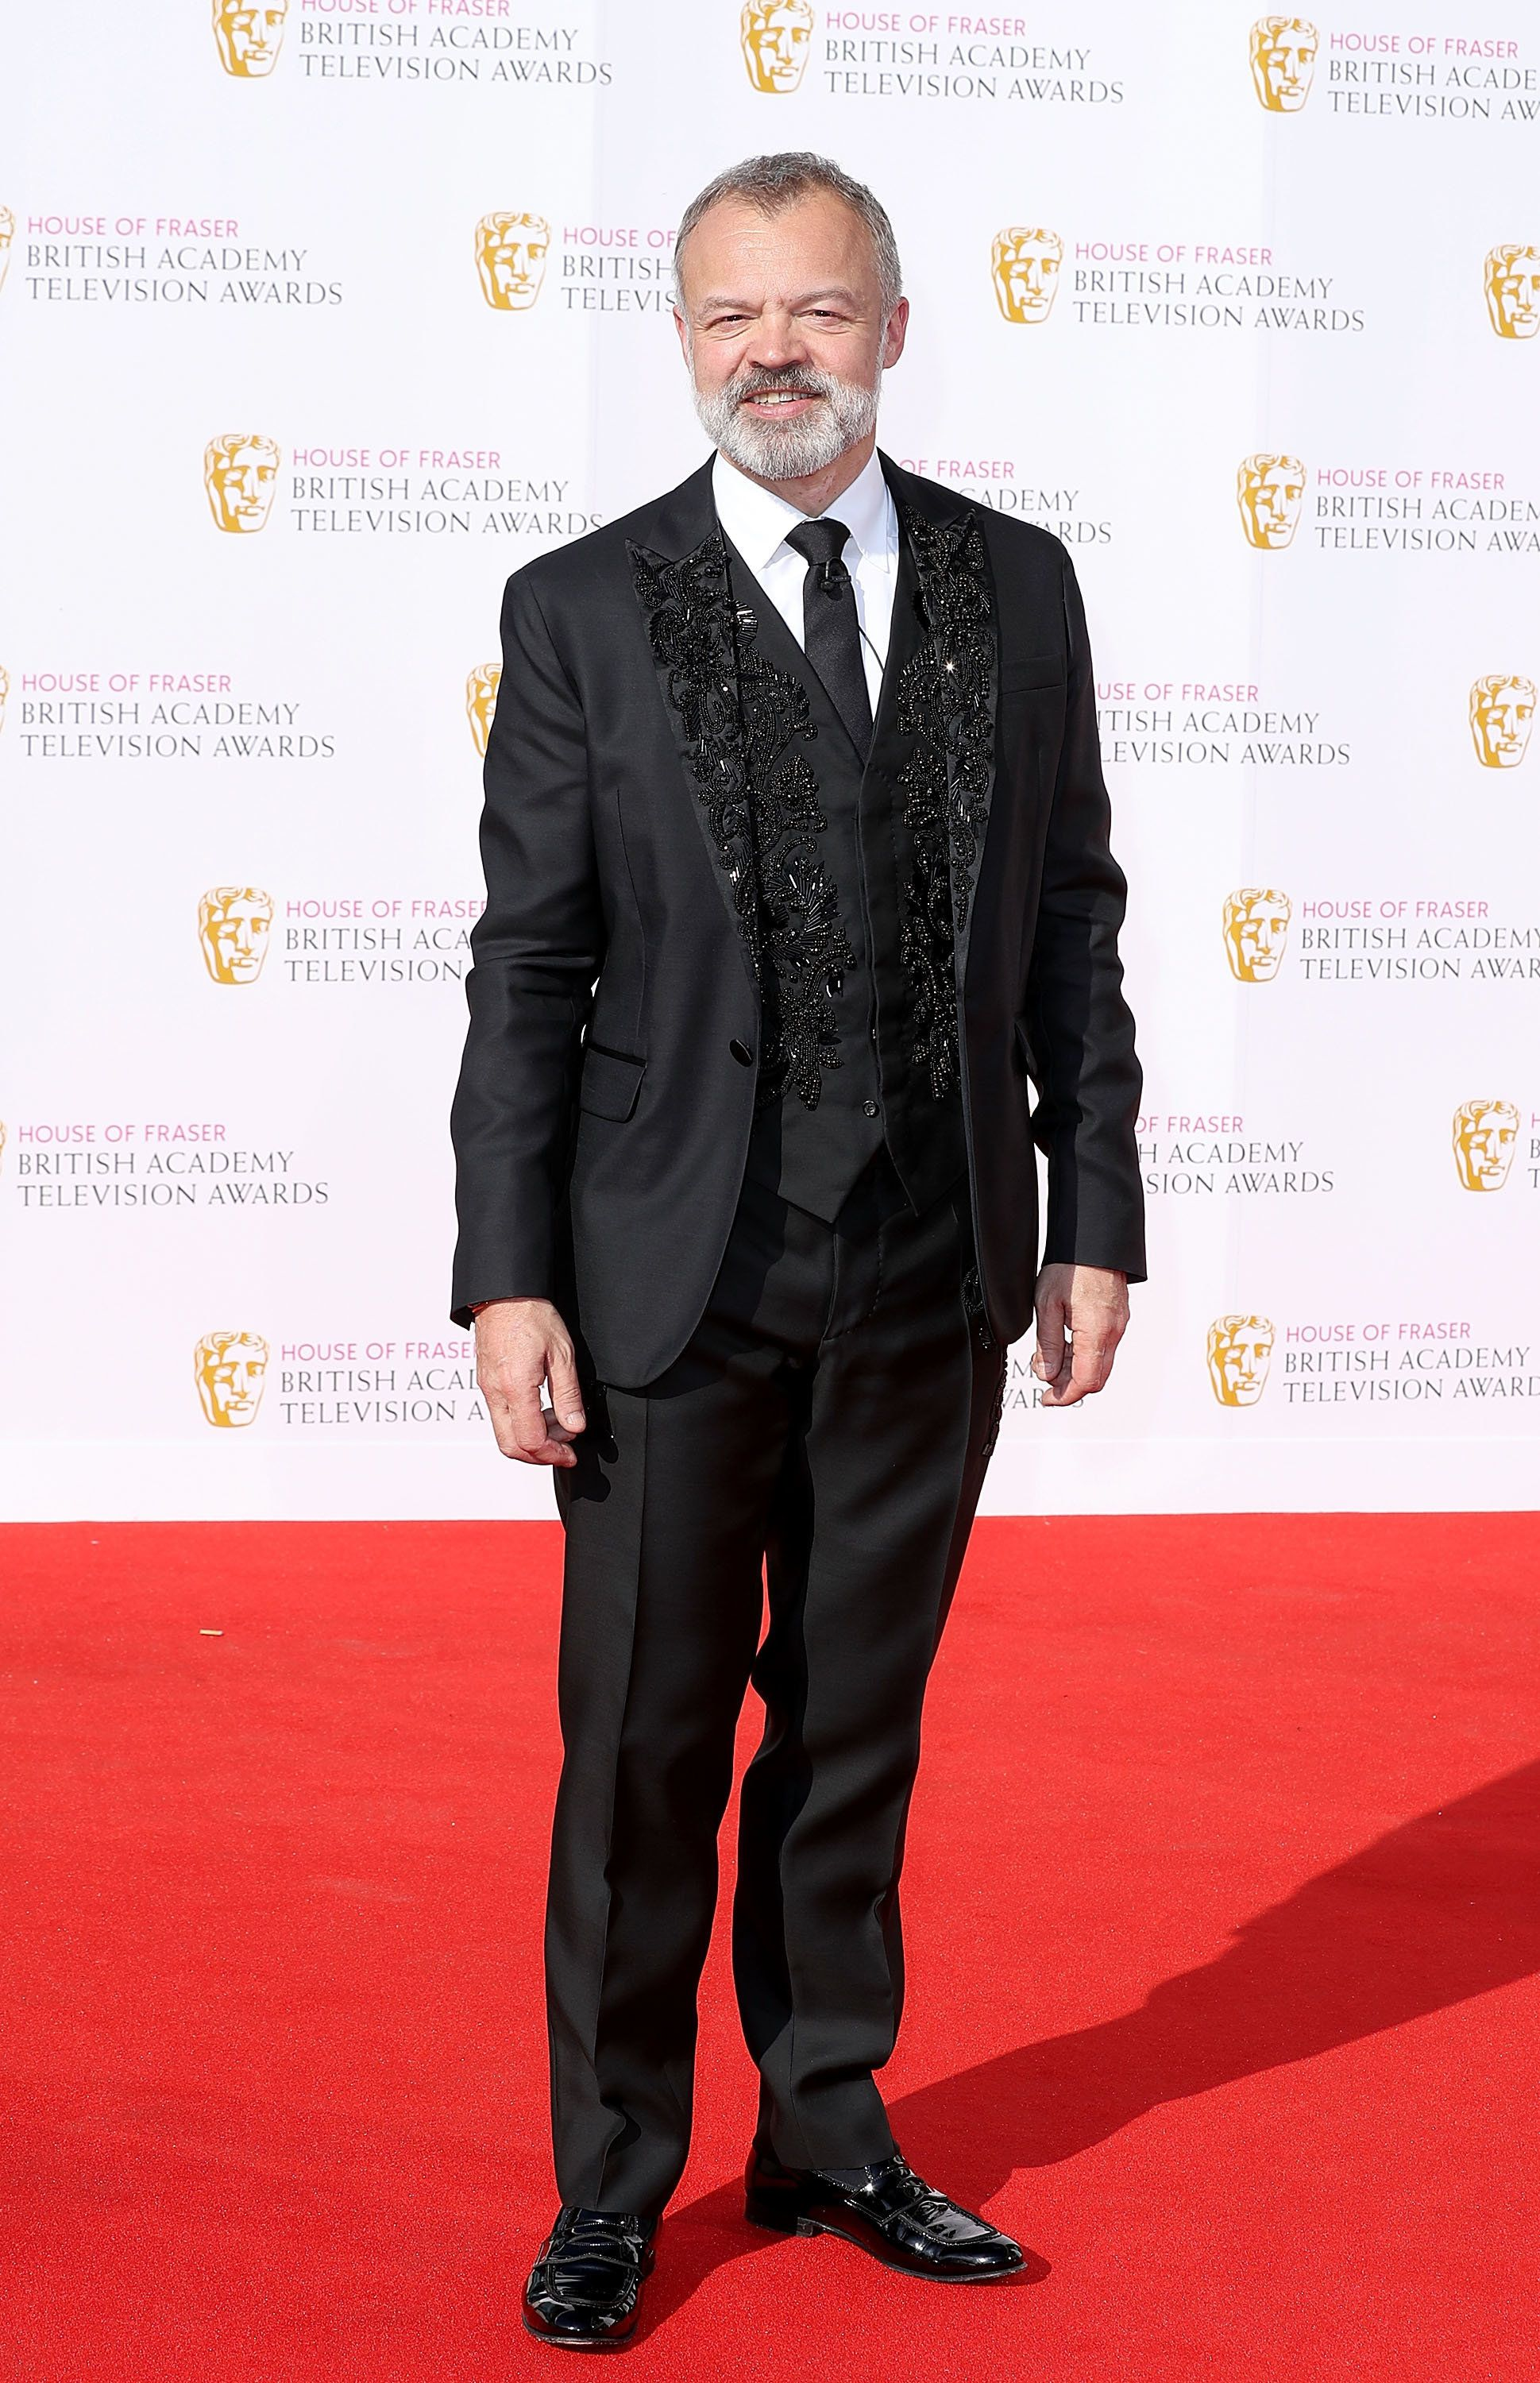 Graham Norton Pulls No Punches With TV BAFTAs Opening